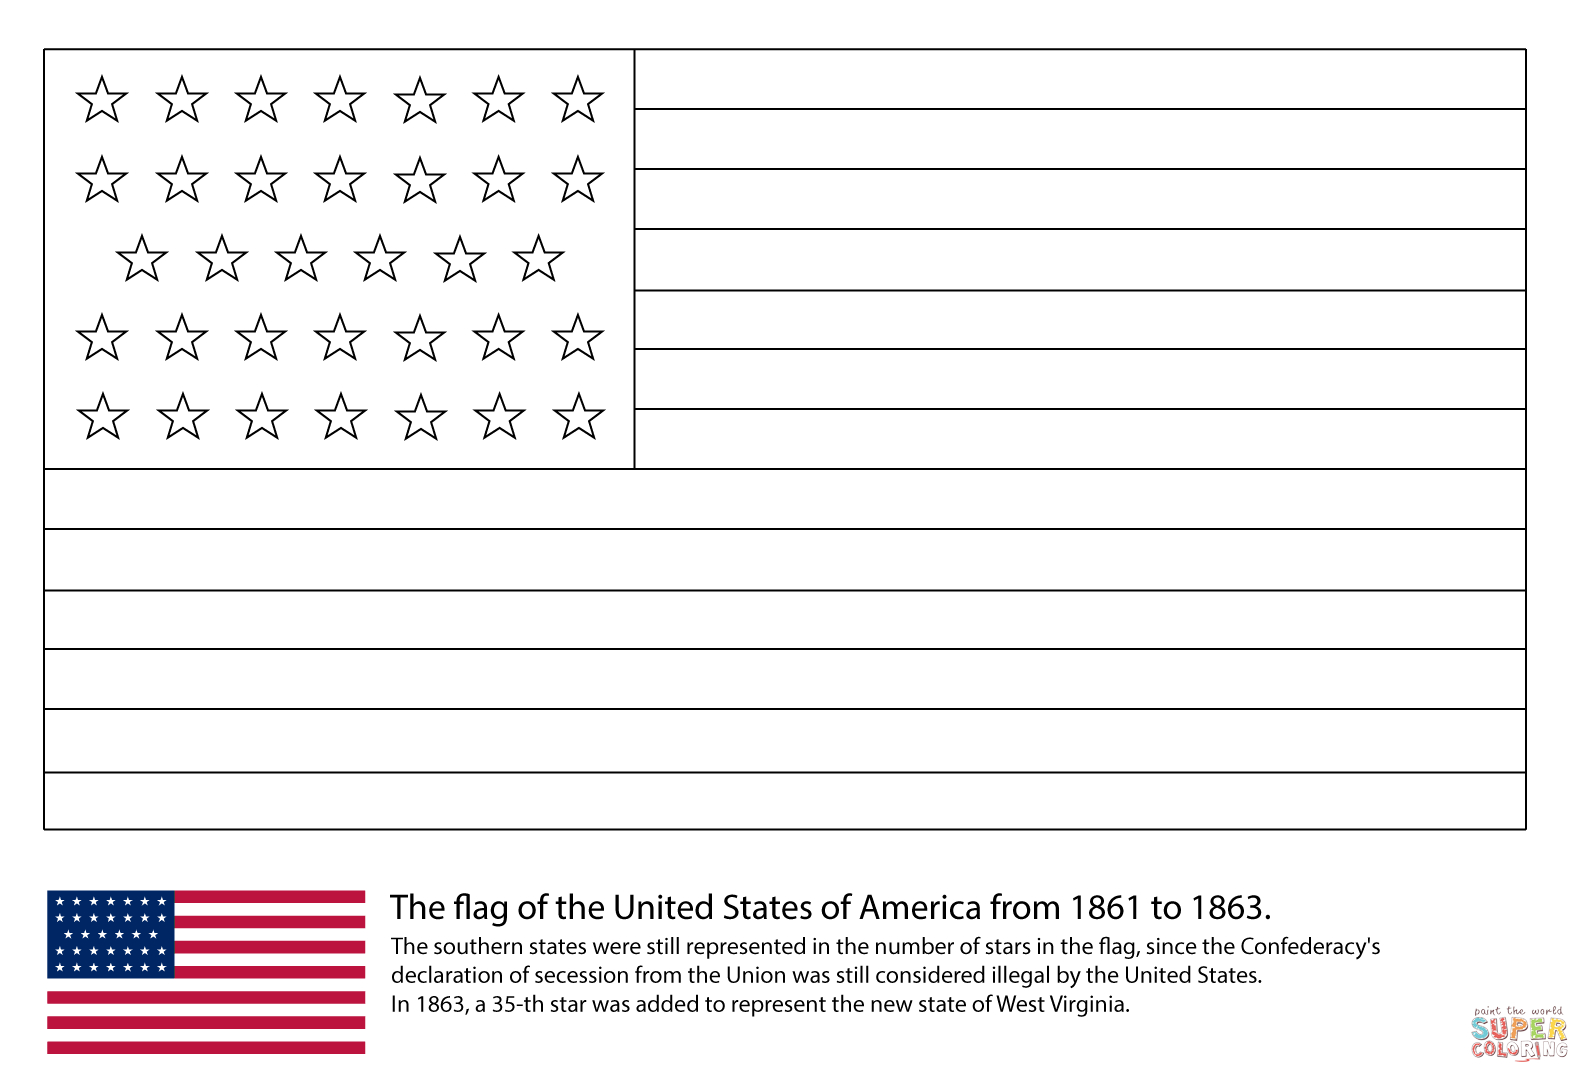 The American Flag Coloring Page Us Flag With 34 Stars 1861 1863 Coloring Page Free Printable